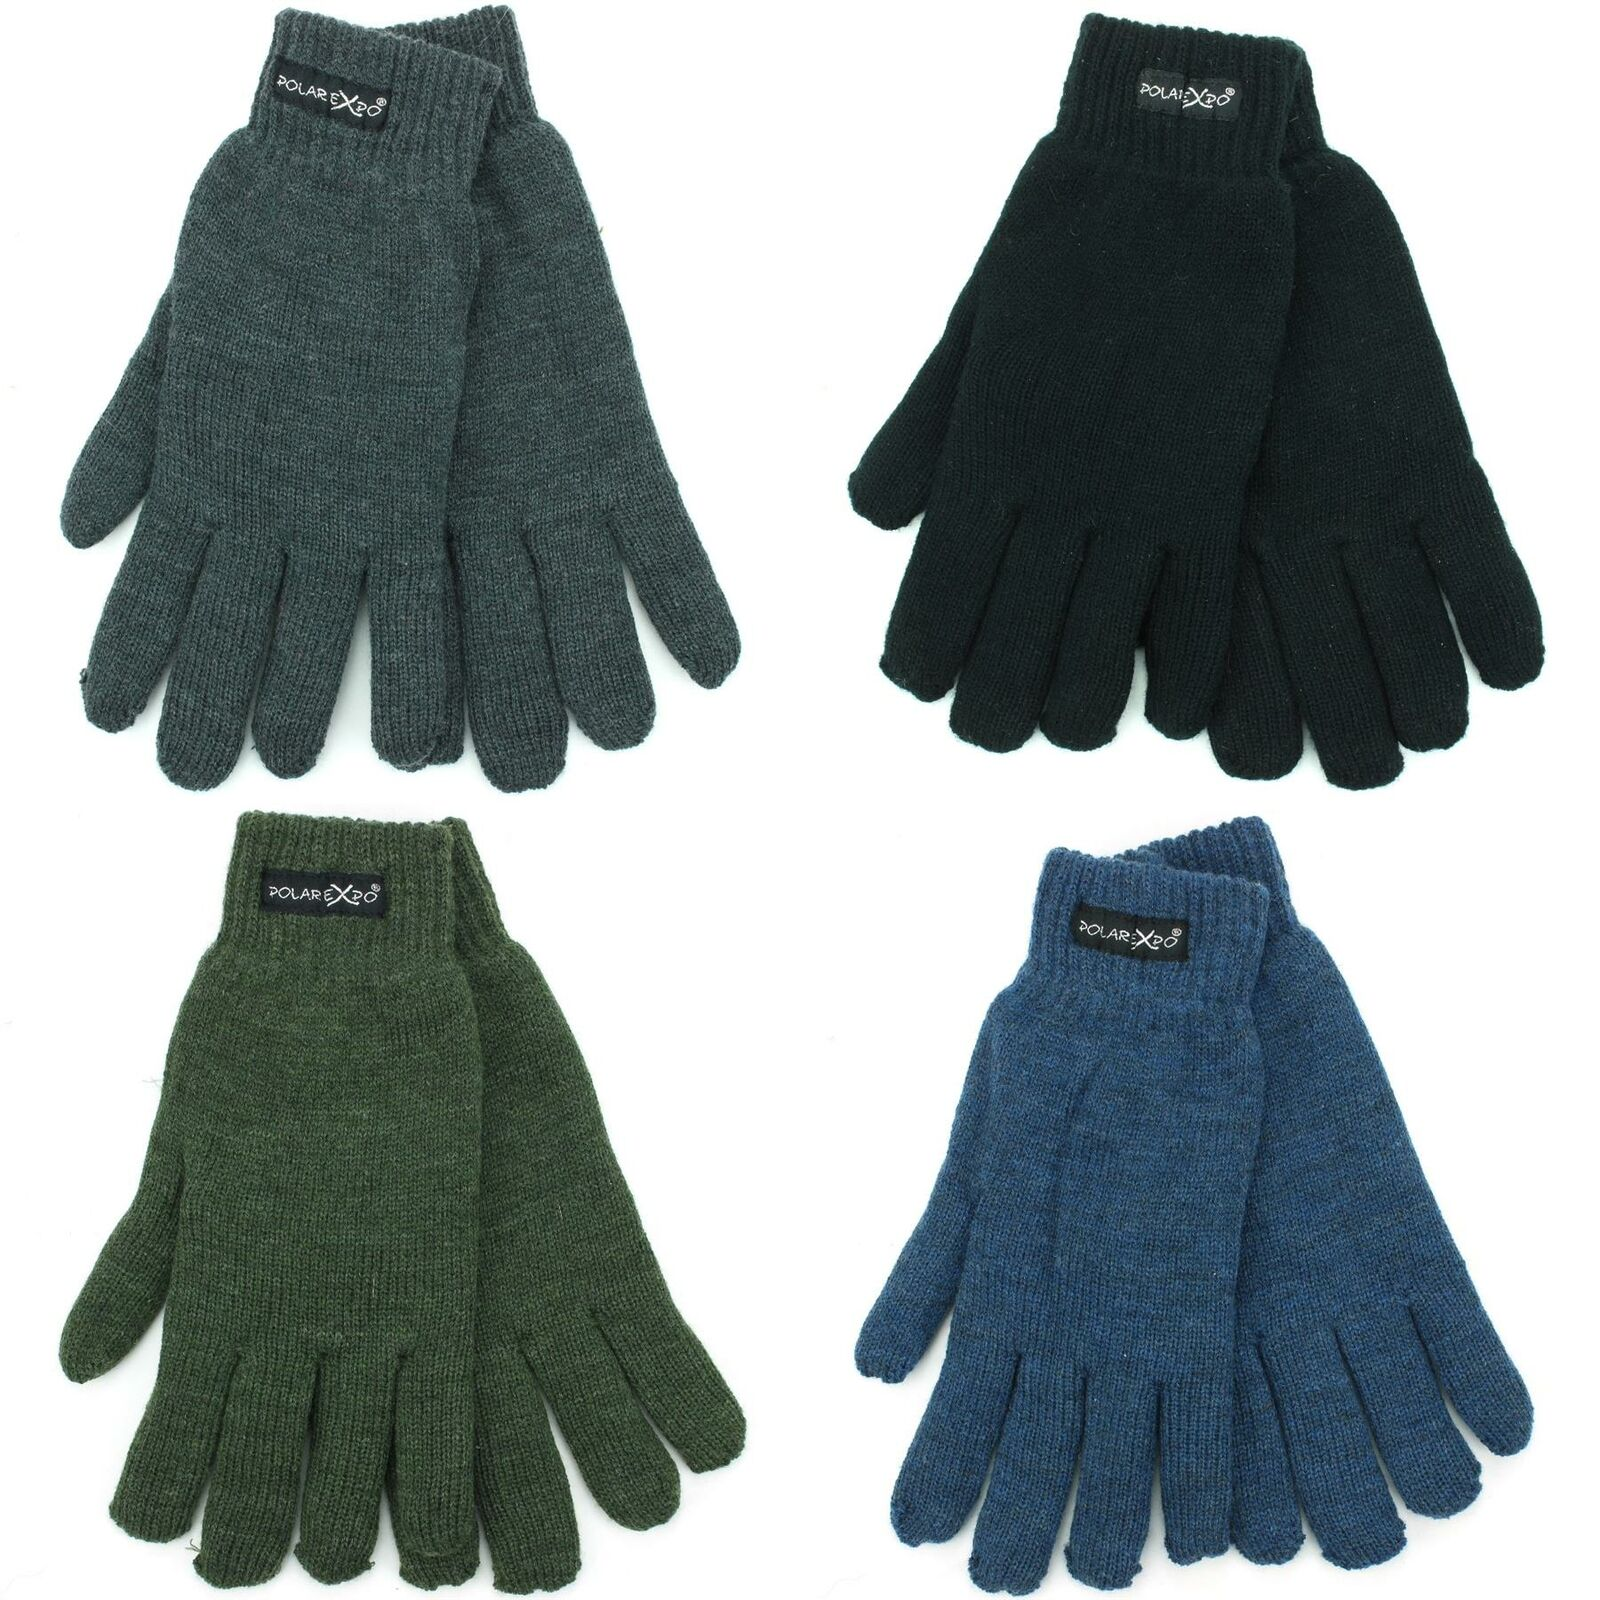 Knitted Elasticated Cuffs Gloves Hawkins Warm Winter Knit Mens Lined